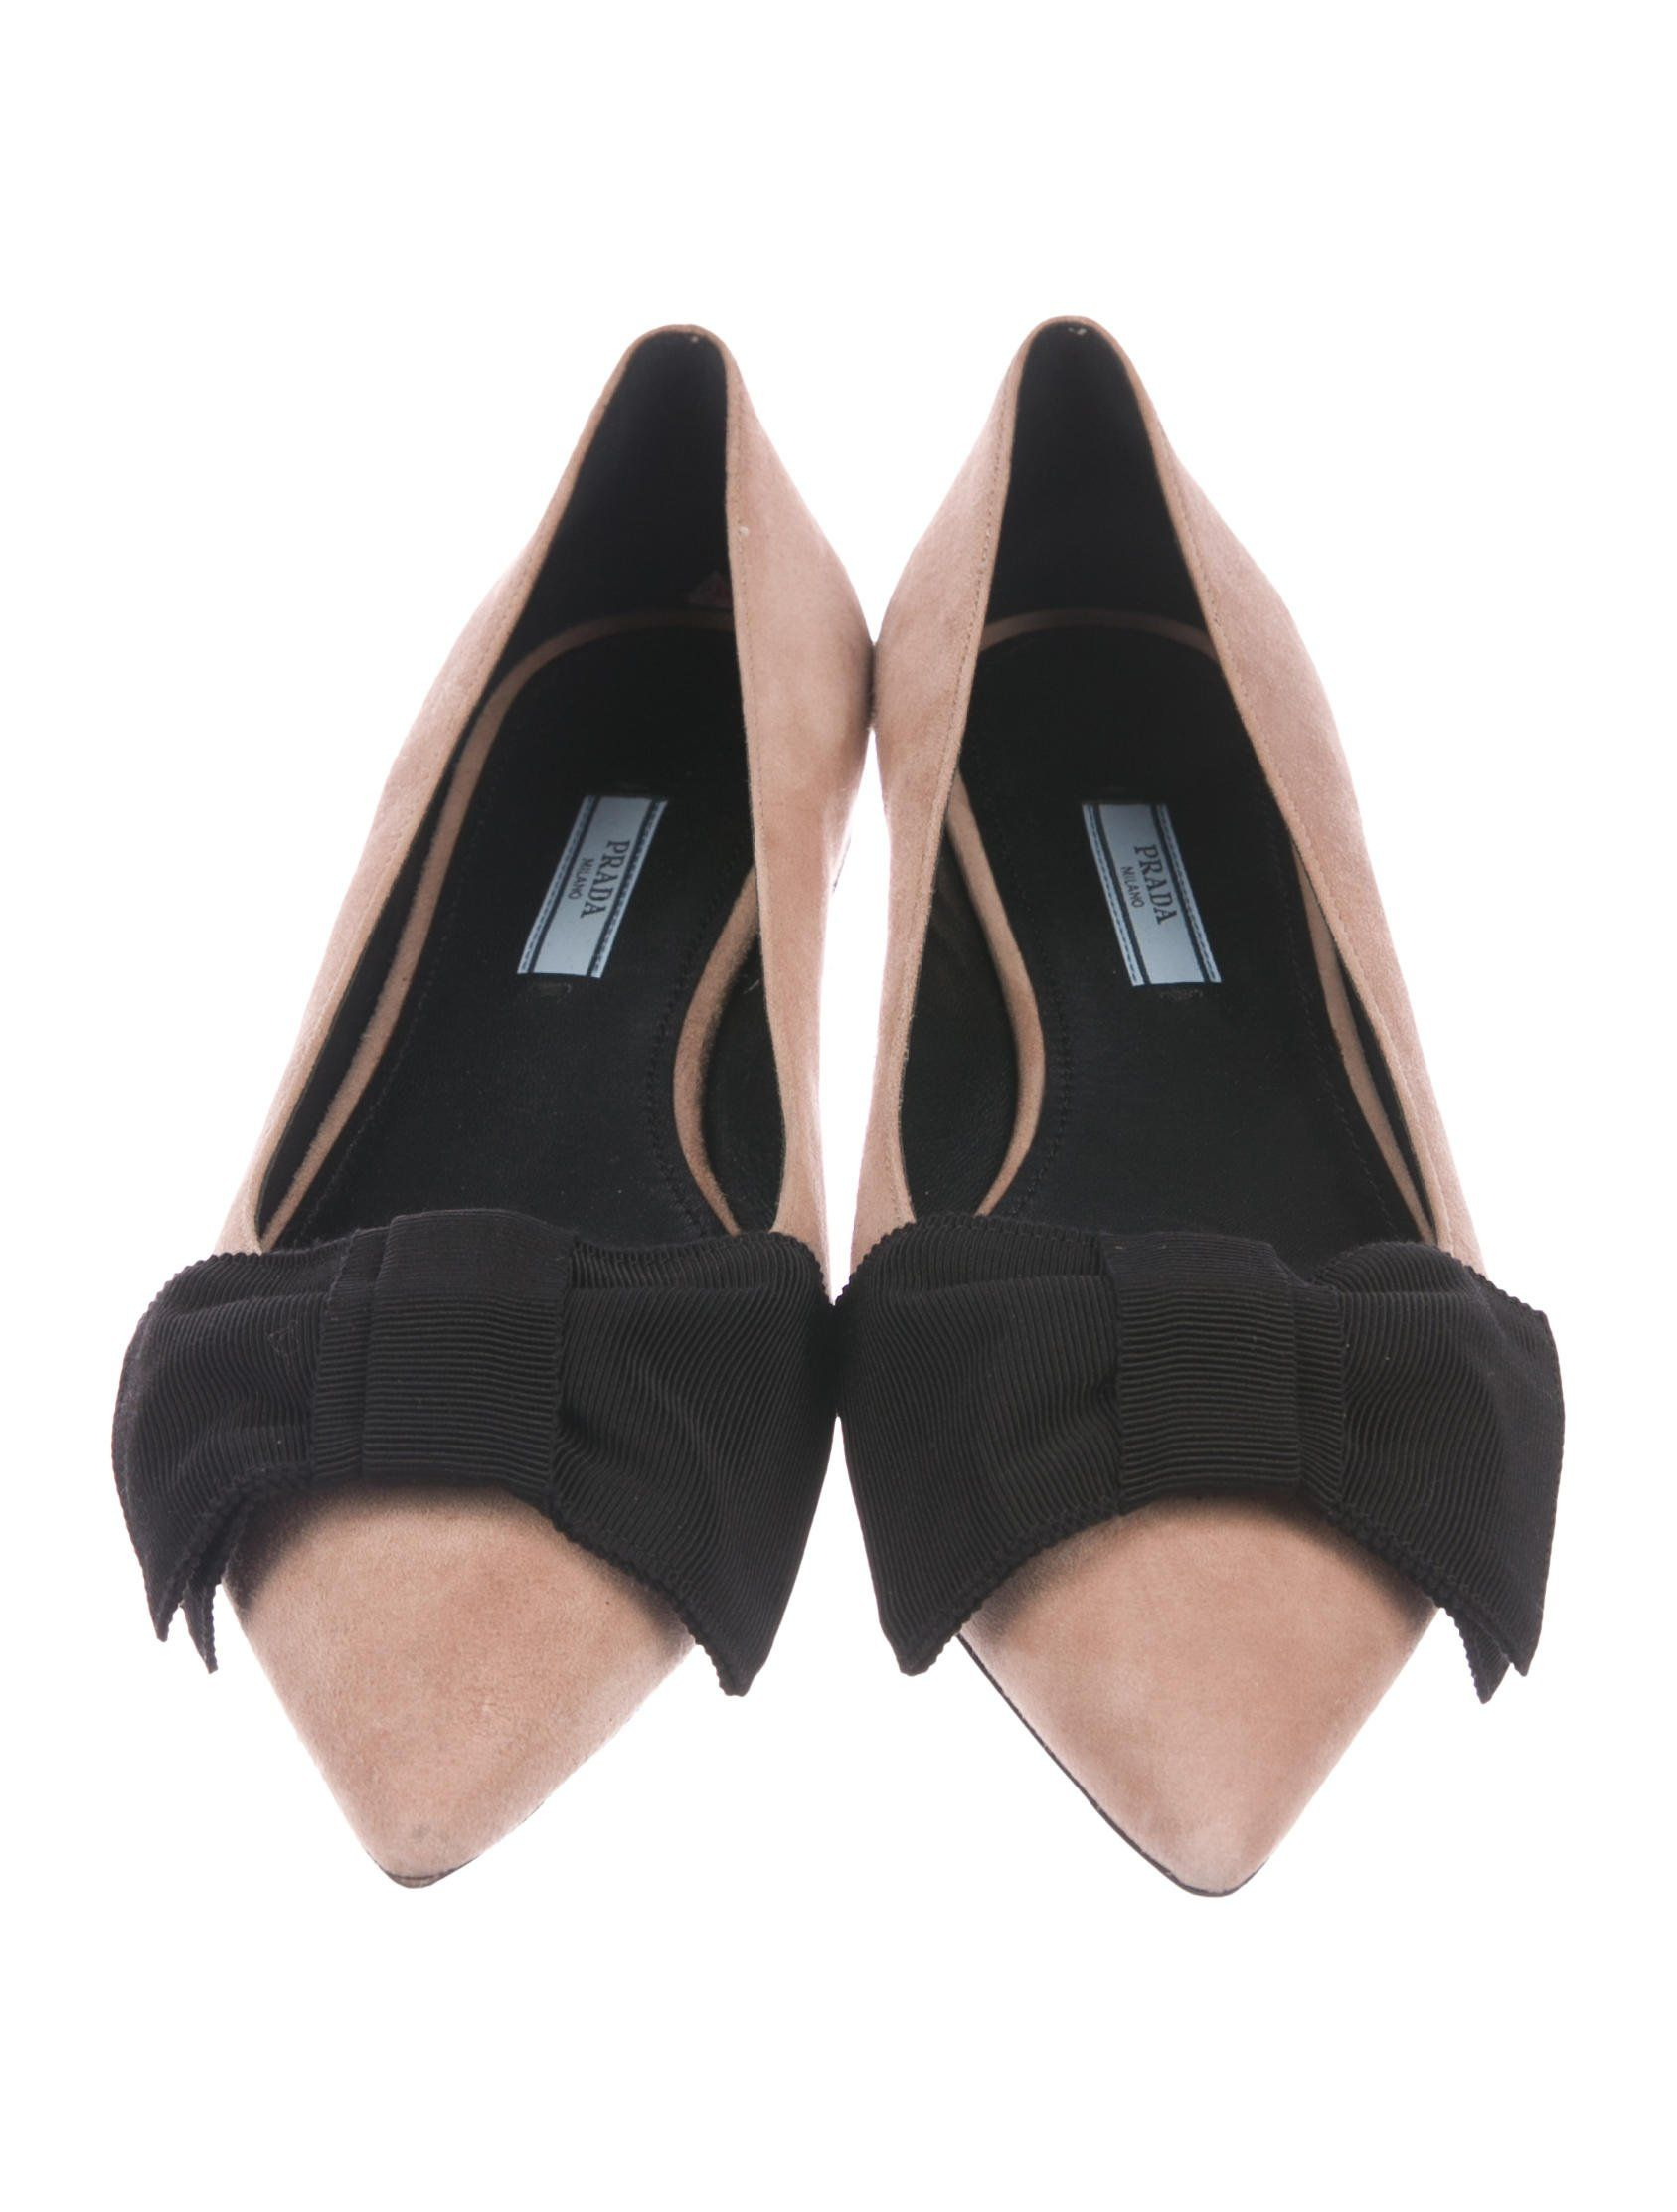 b70145bb2 Mauve suede Prada pointed-toe flats with bow accents at vamps, tonal  stitchings and covered heels.